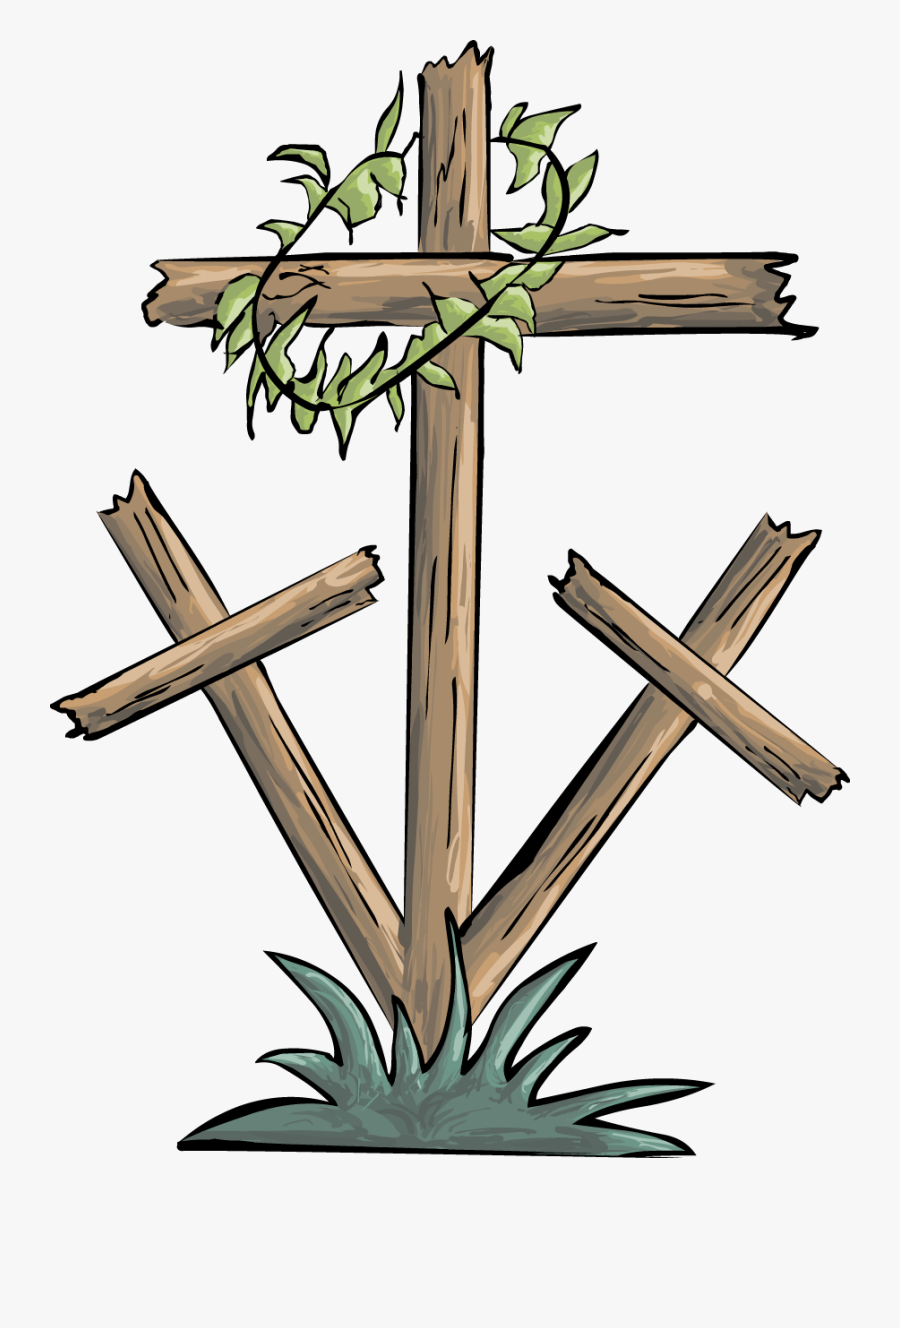 Transparent Cross And Crown Clipart - Good Friday Cross Clipart, Transparent Clipart